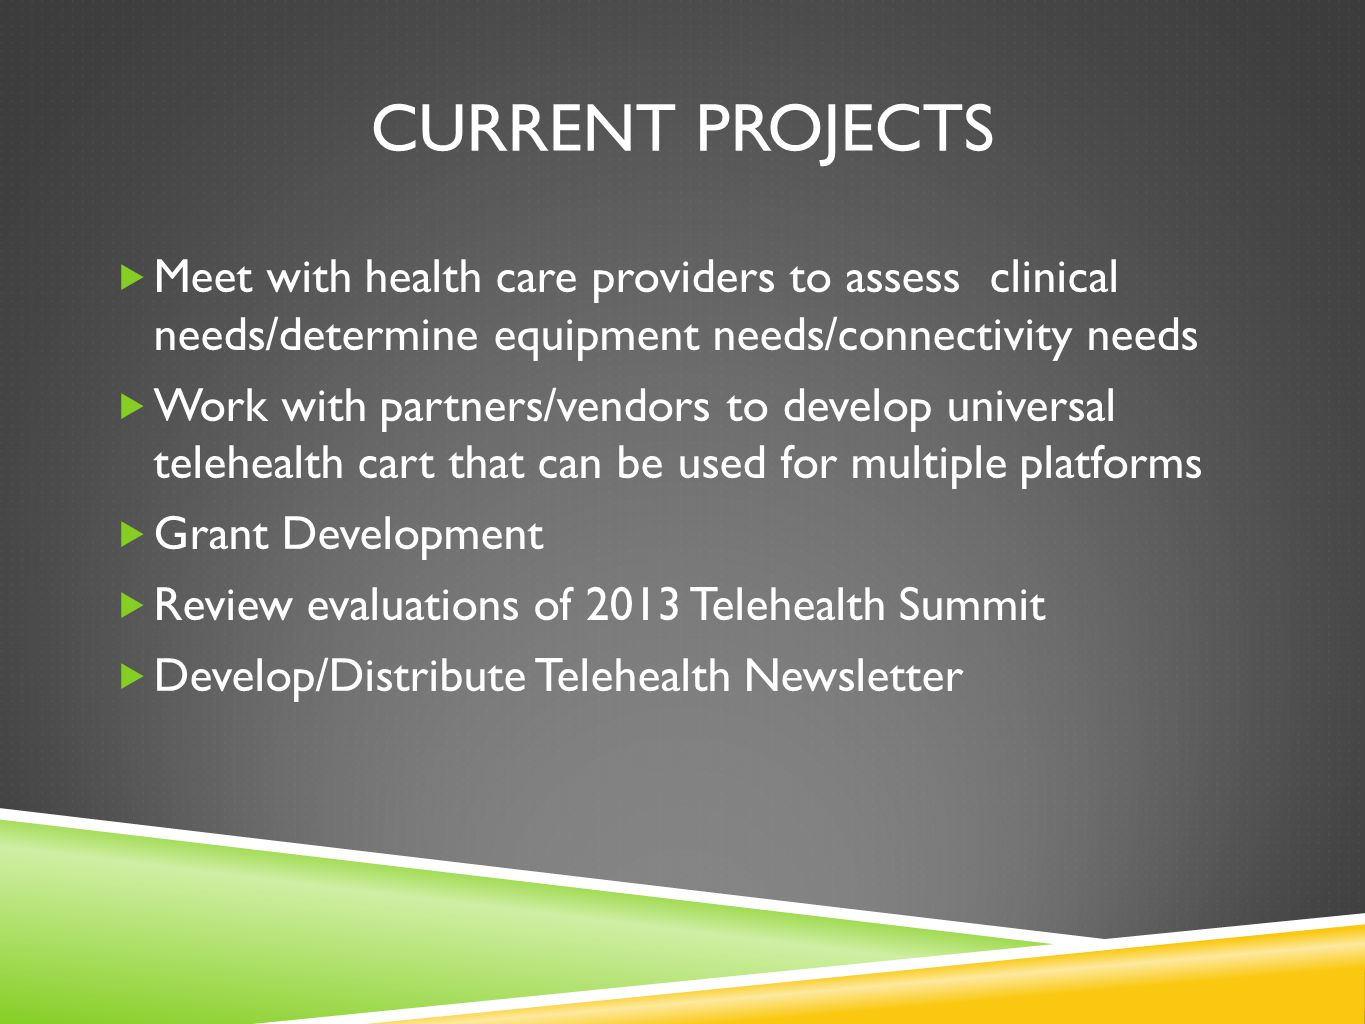 CURRENT PROJECTS Meet with health care providers to assess clinical needs/determine equipment needs/connectivity needs.